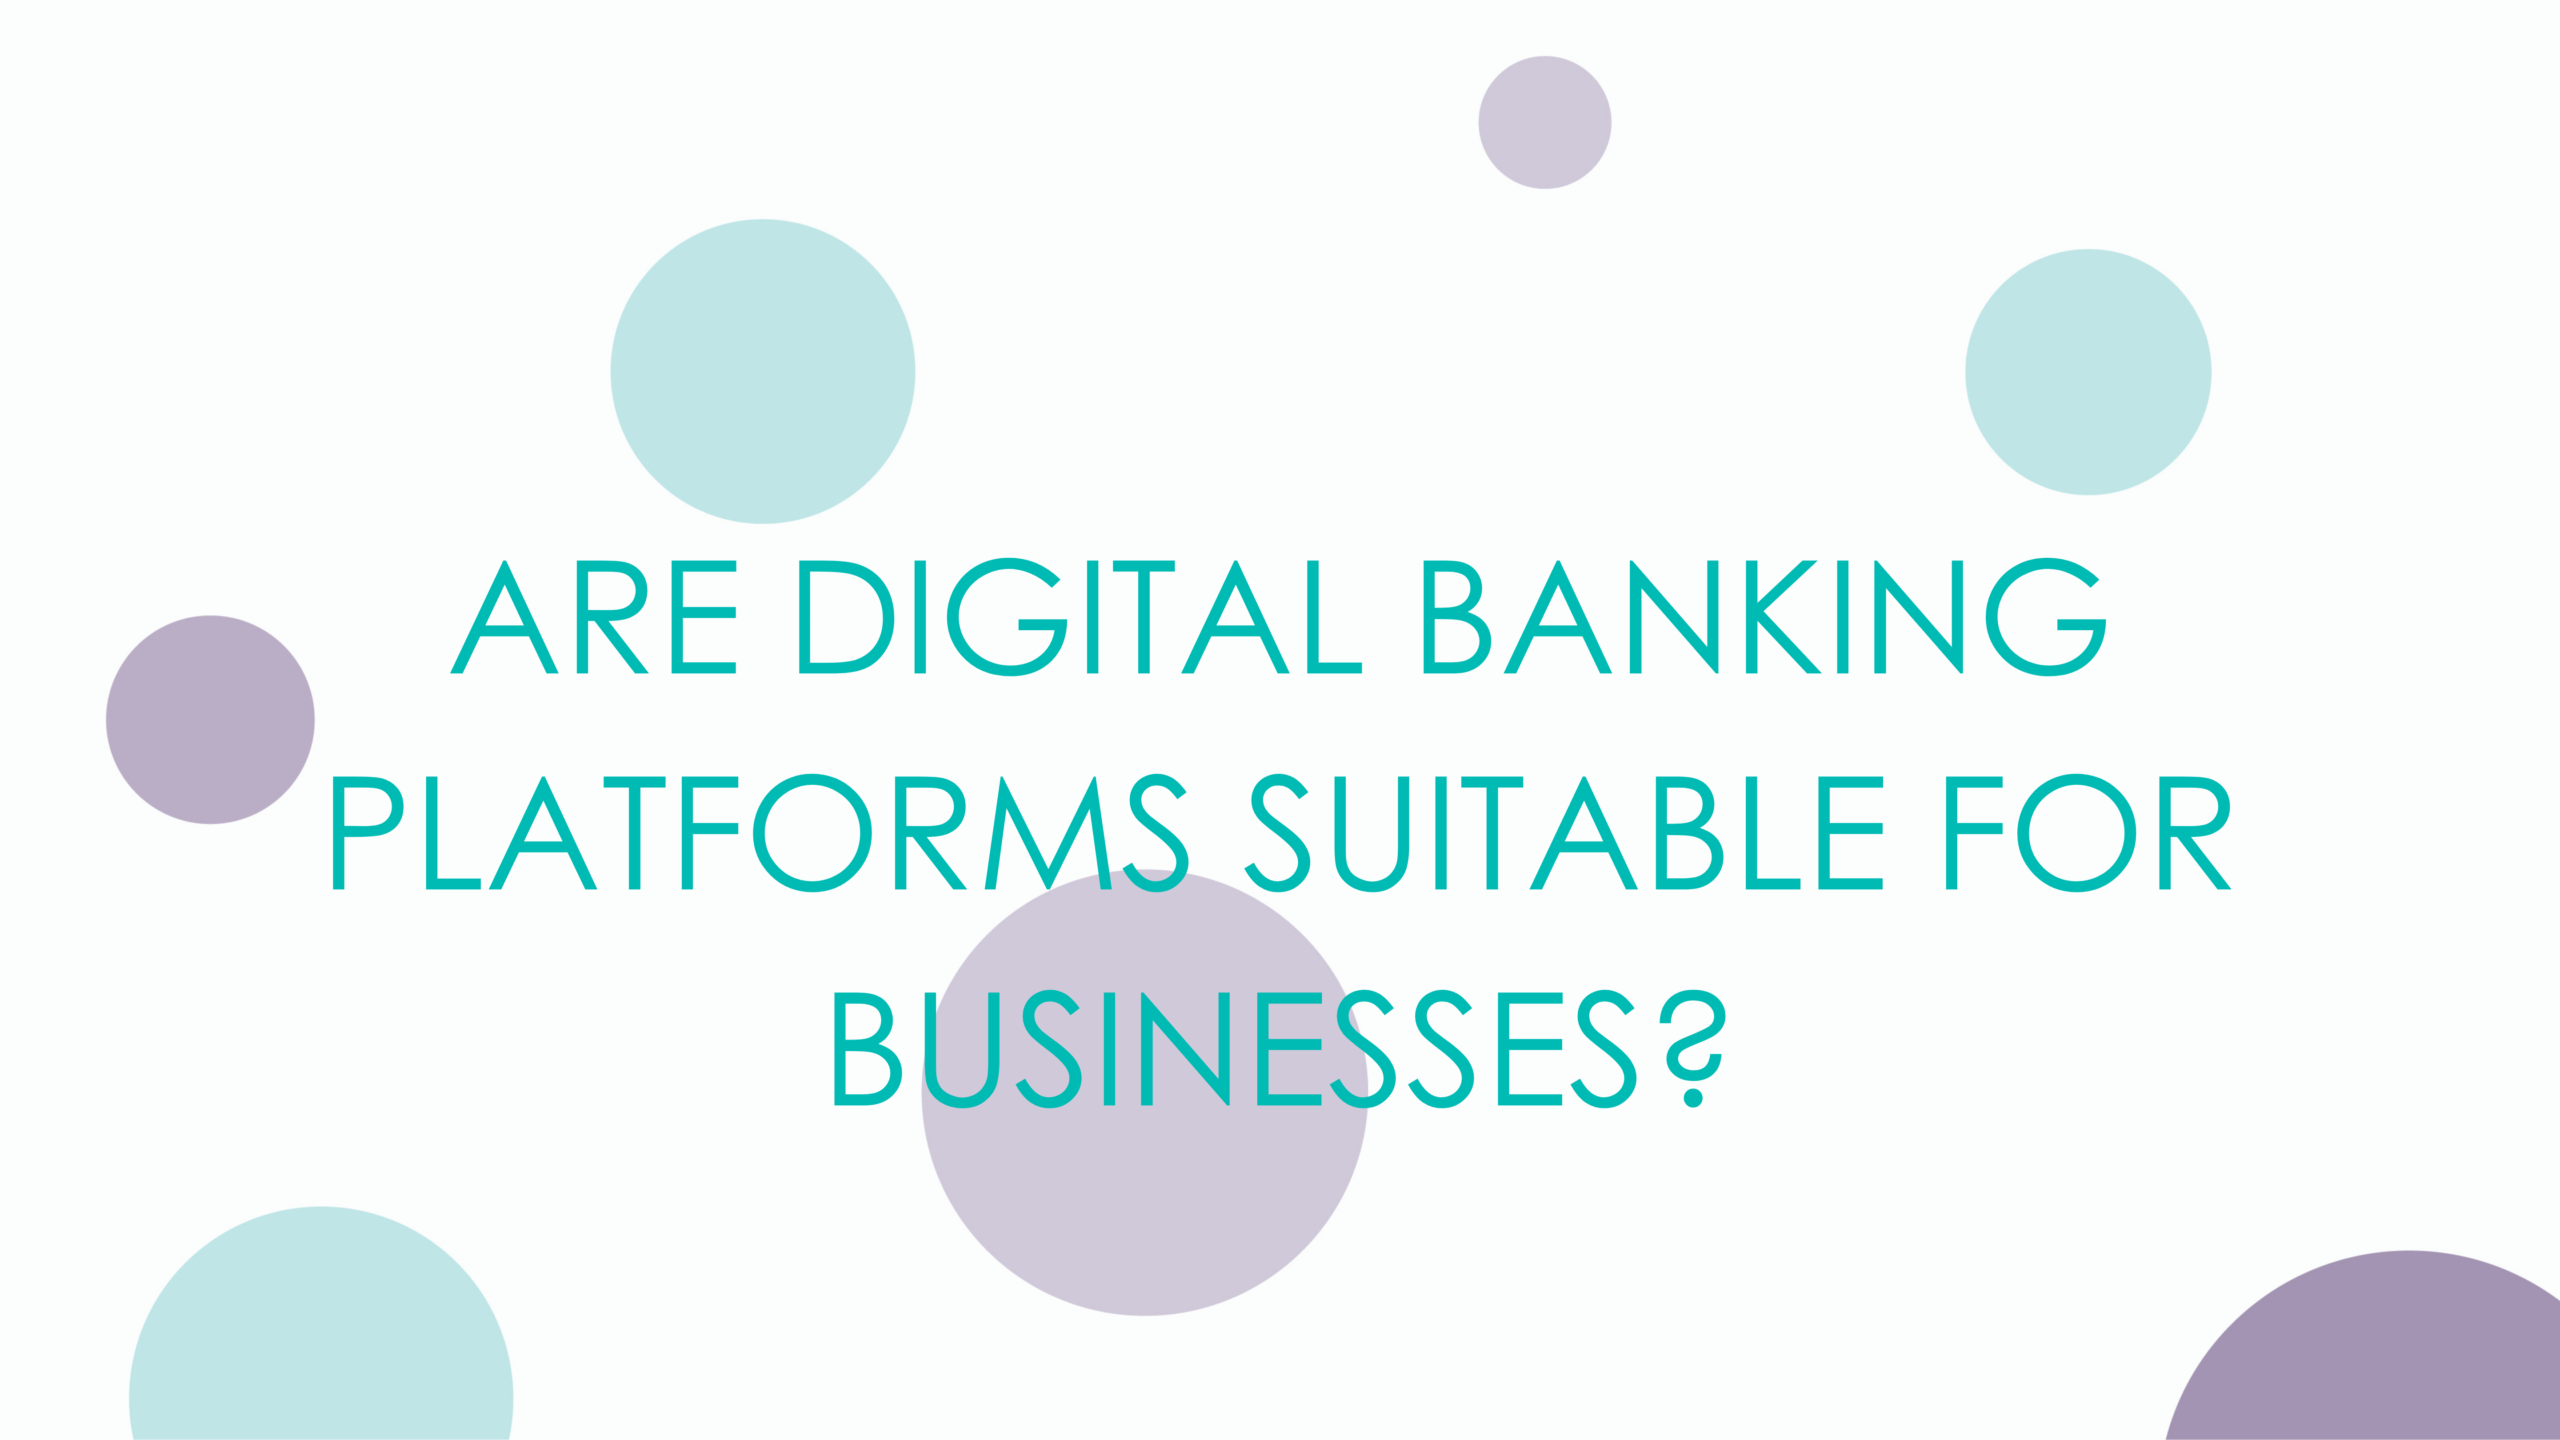 ARE YOUR DIGITAL BANKING PLATFORMS SUITABLE FOR BUSINESS?